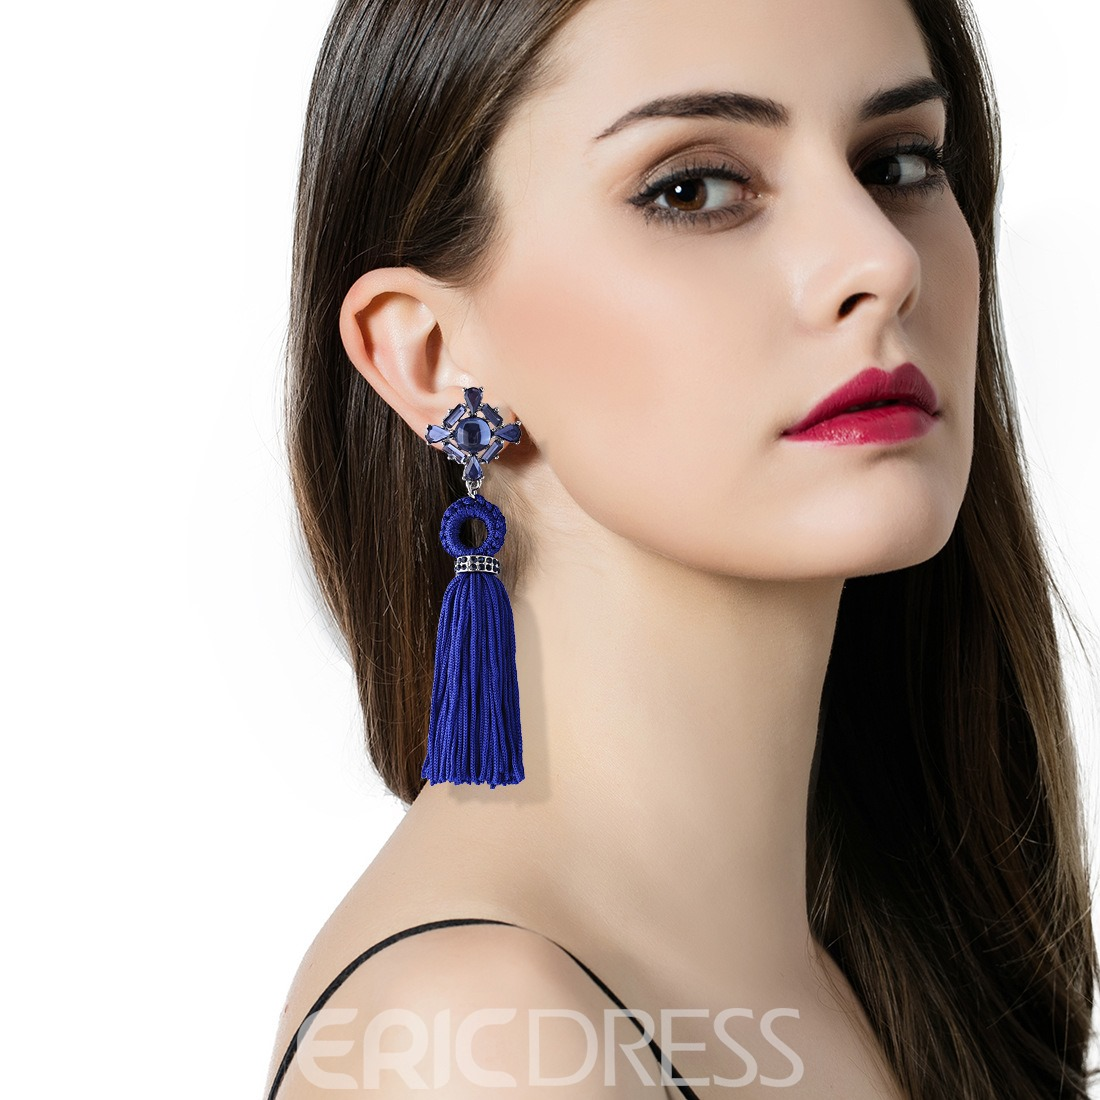 Ericdress Chic Handmade Tassel Earring for Women